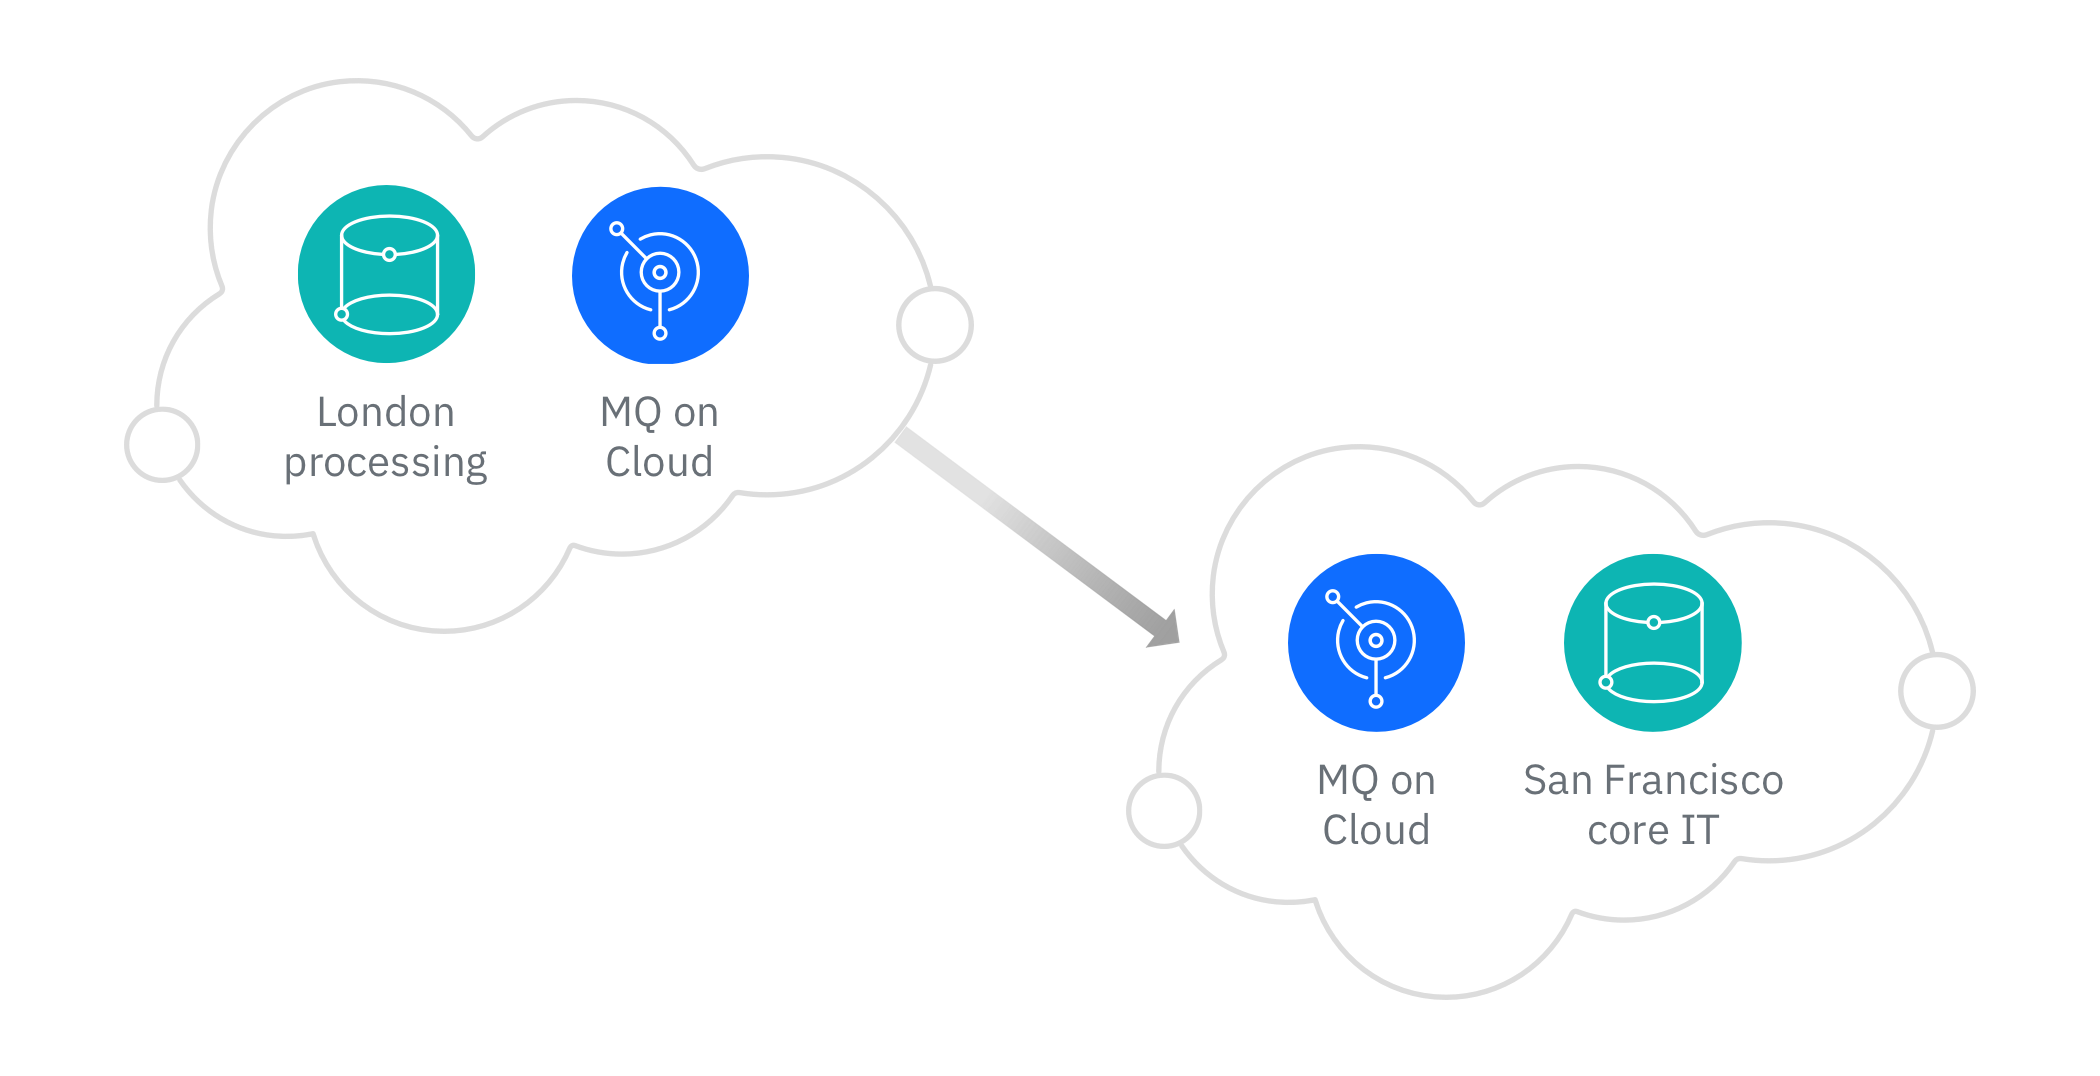 Connect applications hosted in different locations with IBM MQ on Cloud as depicted by a diagram linking London processing and an MQ app in one cloud to another cloud with an MQ app and core IT in San Francisco